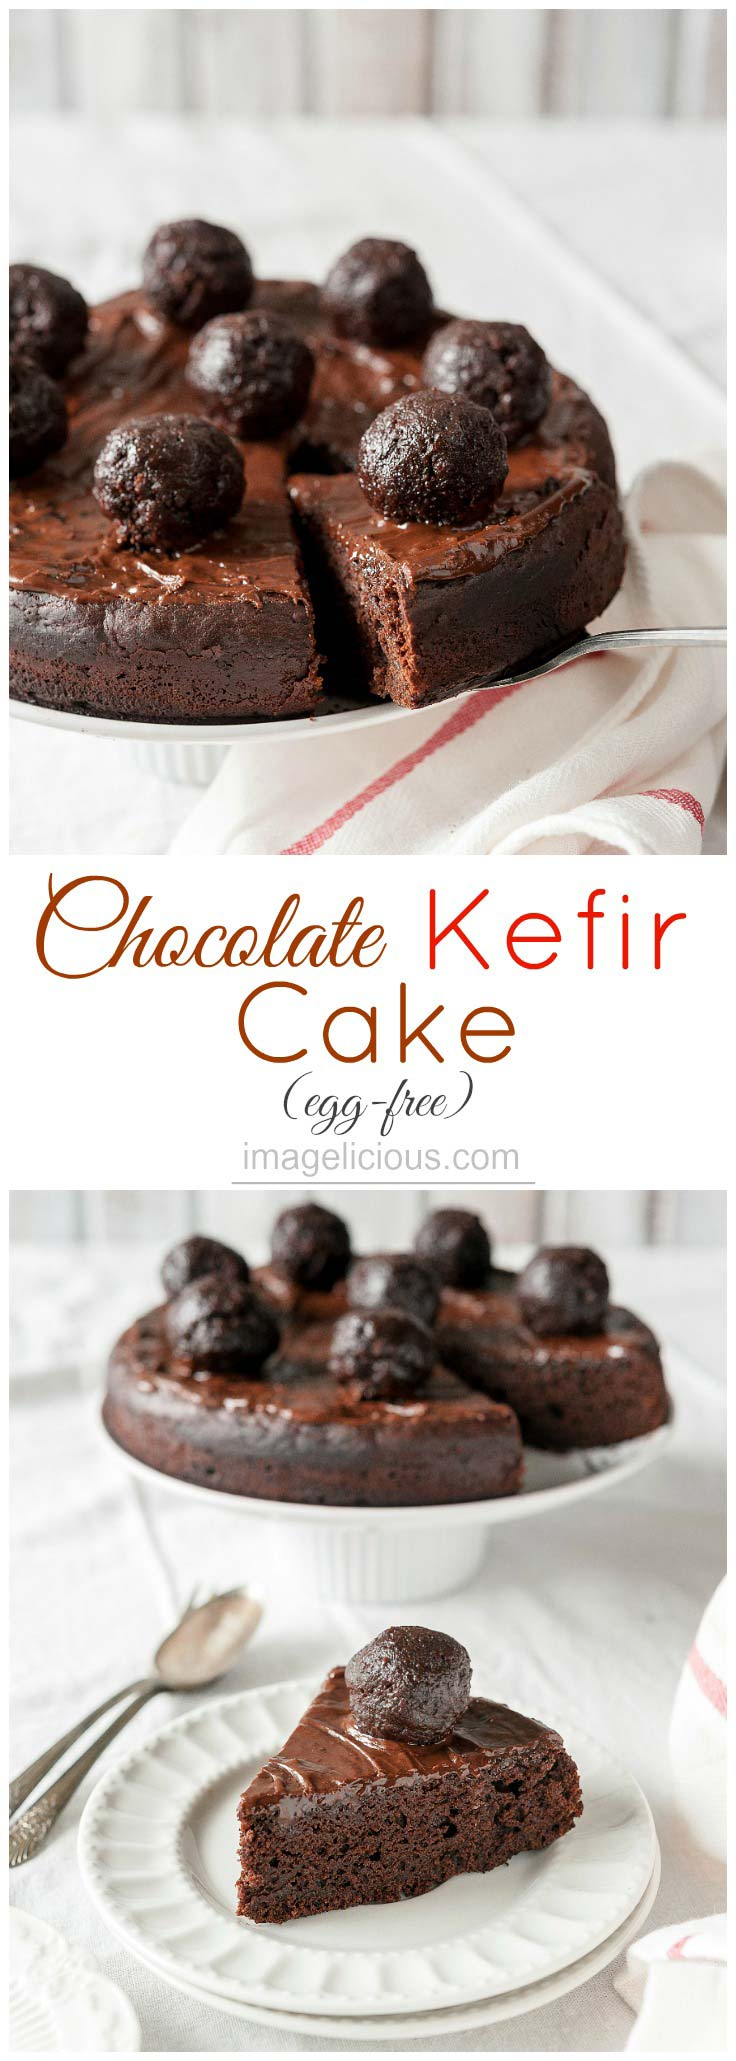 This Chocolate Kefir Cake is moist and delicious. It's lighter than regular chocolate cake but still has intense flavour and is perfect to end any meal. Great for Valentine's Day dessert | Imagelicious